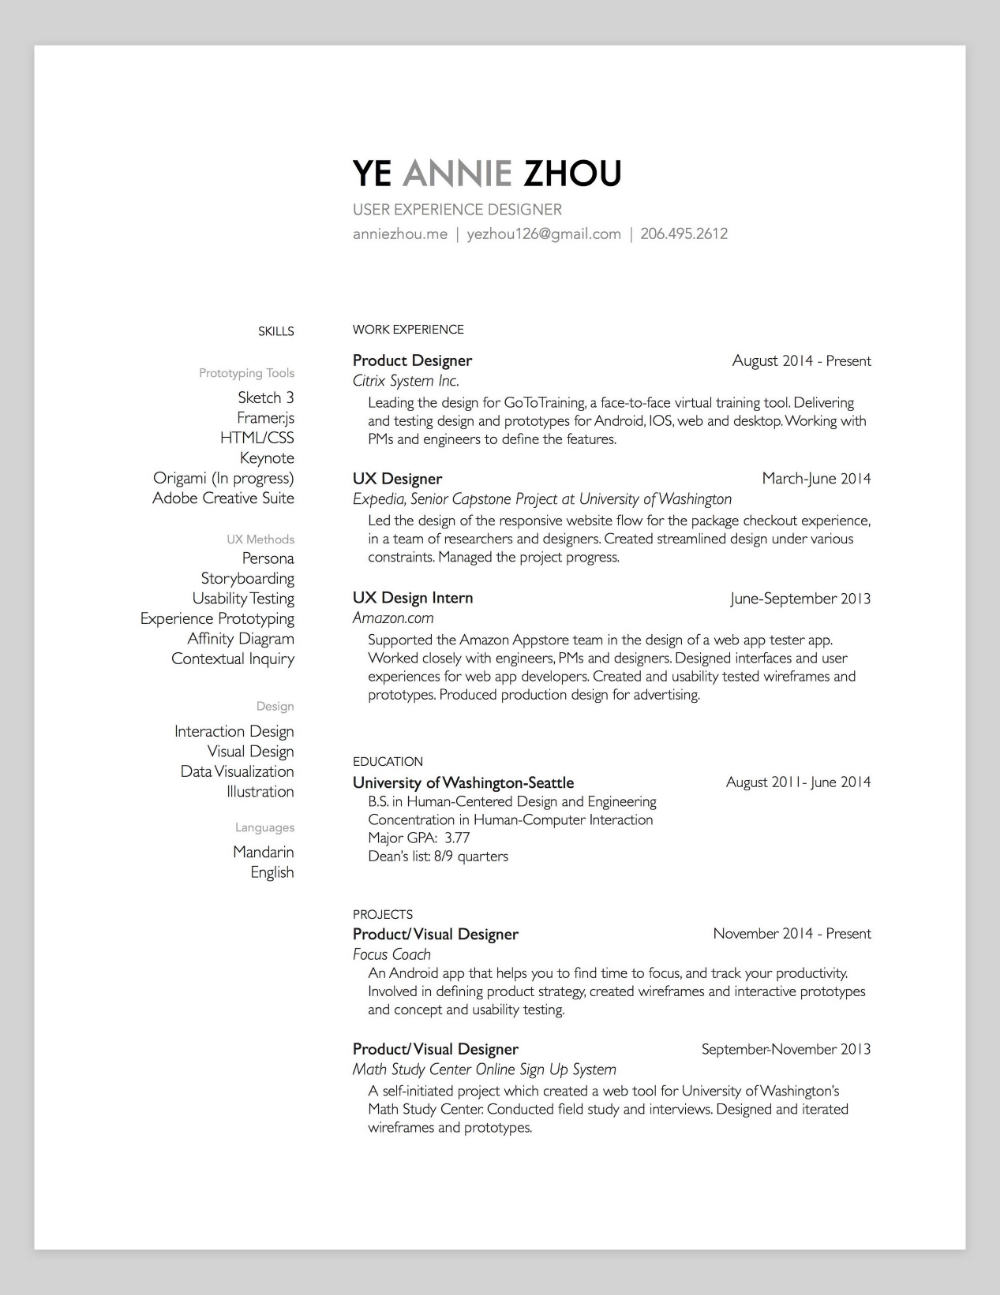 10 Amazing Designer Resumes that Passed Google's Bar - Resume design, Resume, Human centered design, Work experience, Engineering programs, User experience design - Jihoon is a student at Human Centered Design & Engineering program at University of Washington and former UX intern at Google  Hanna is a Senior UX Designer at Google Play Store team  She previously…